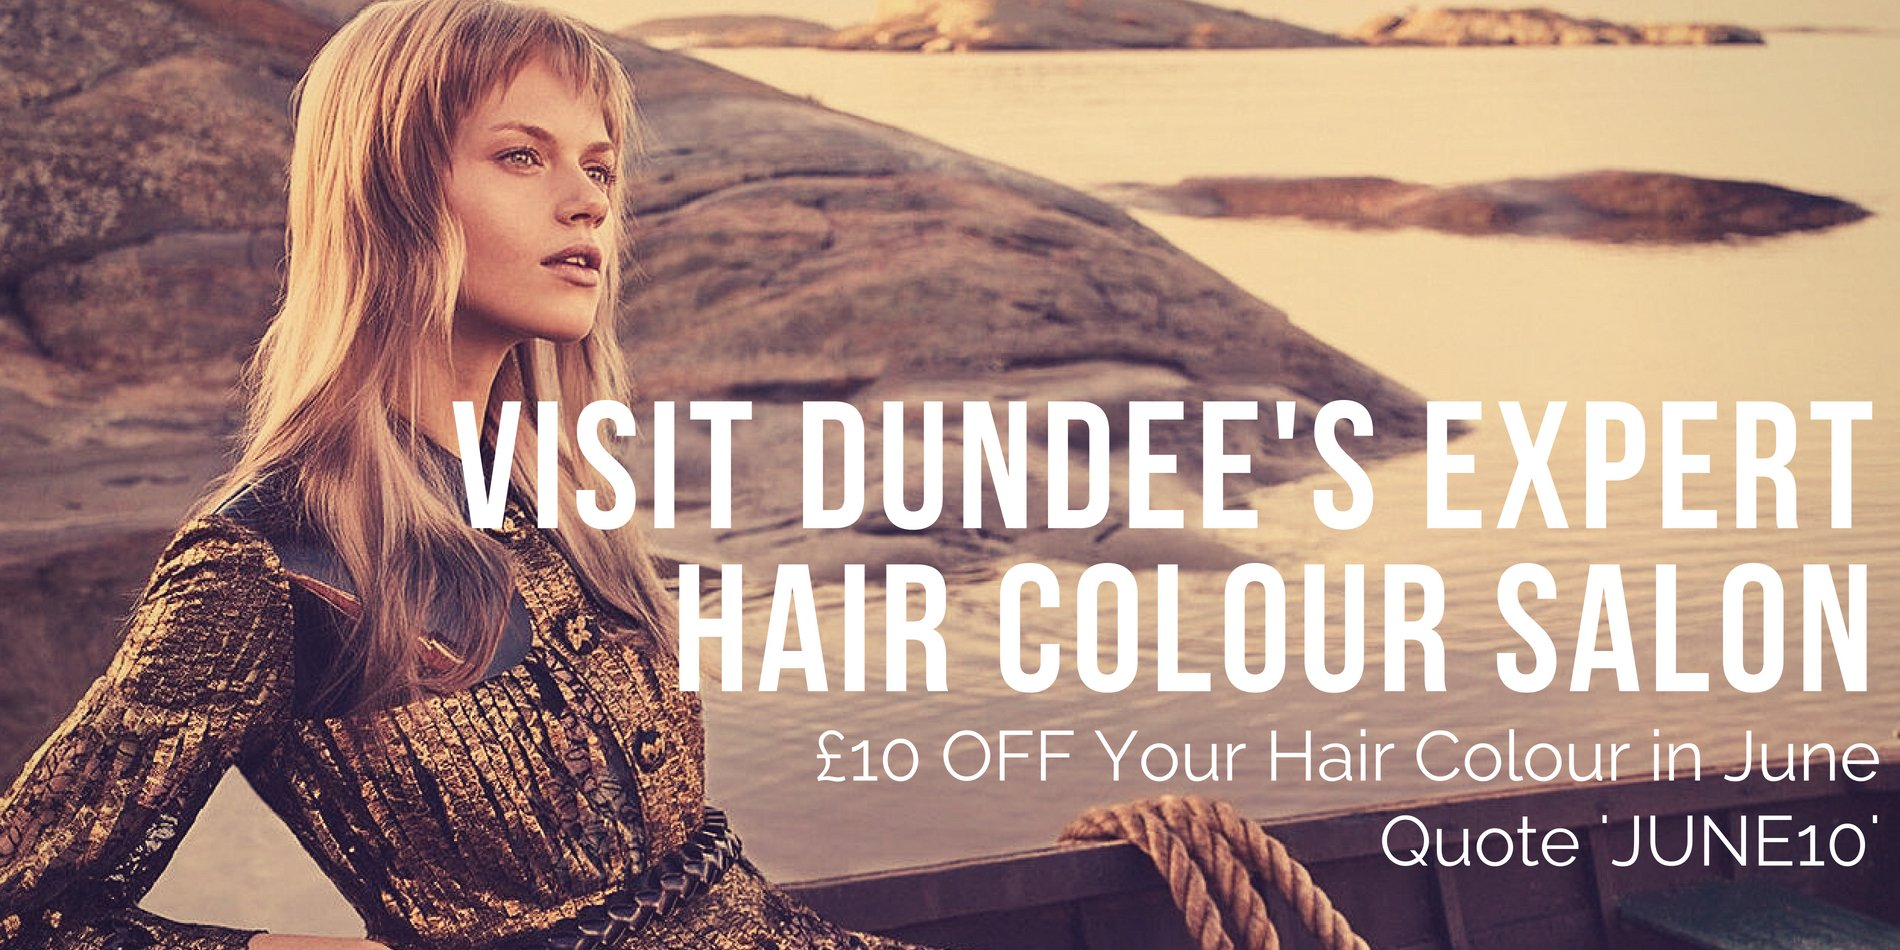 Get £10 OFF Your Hair Colour in June!